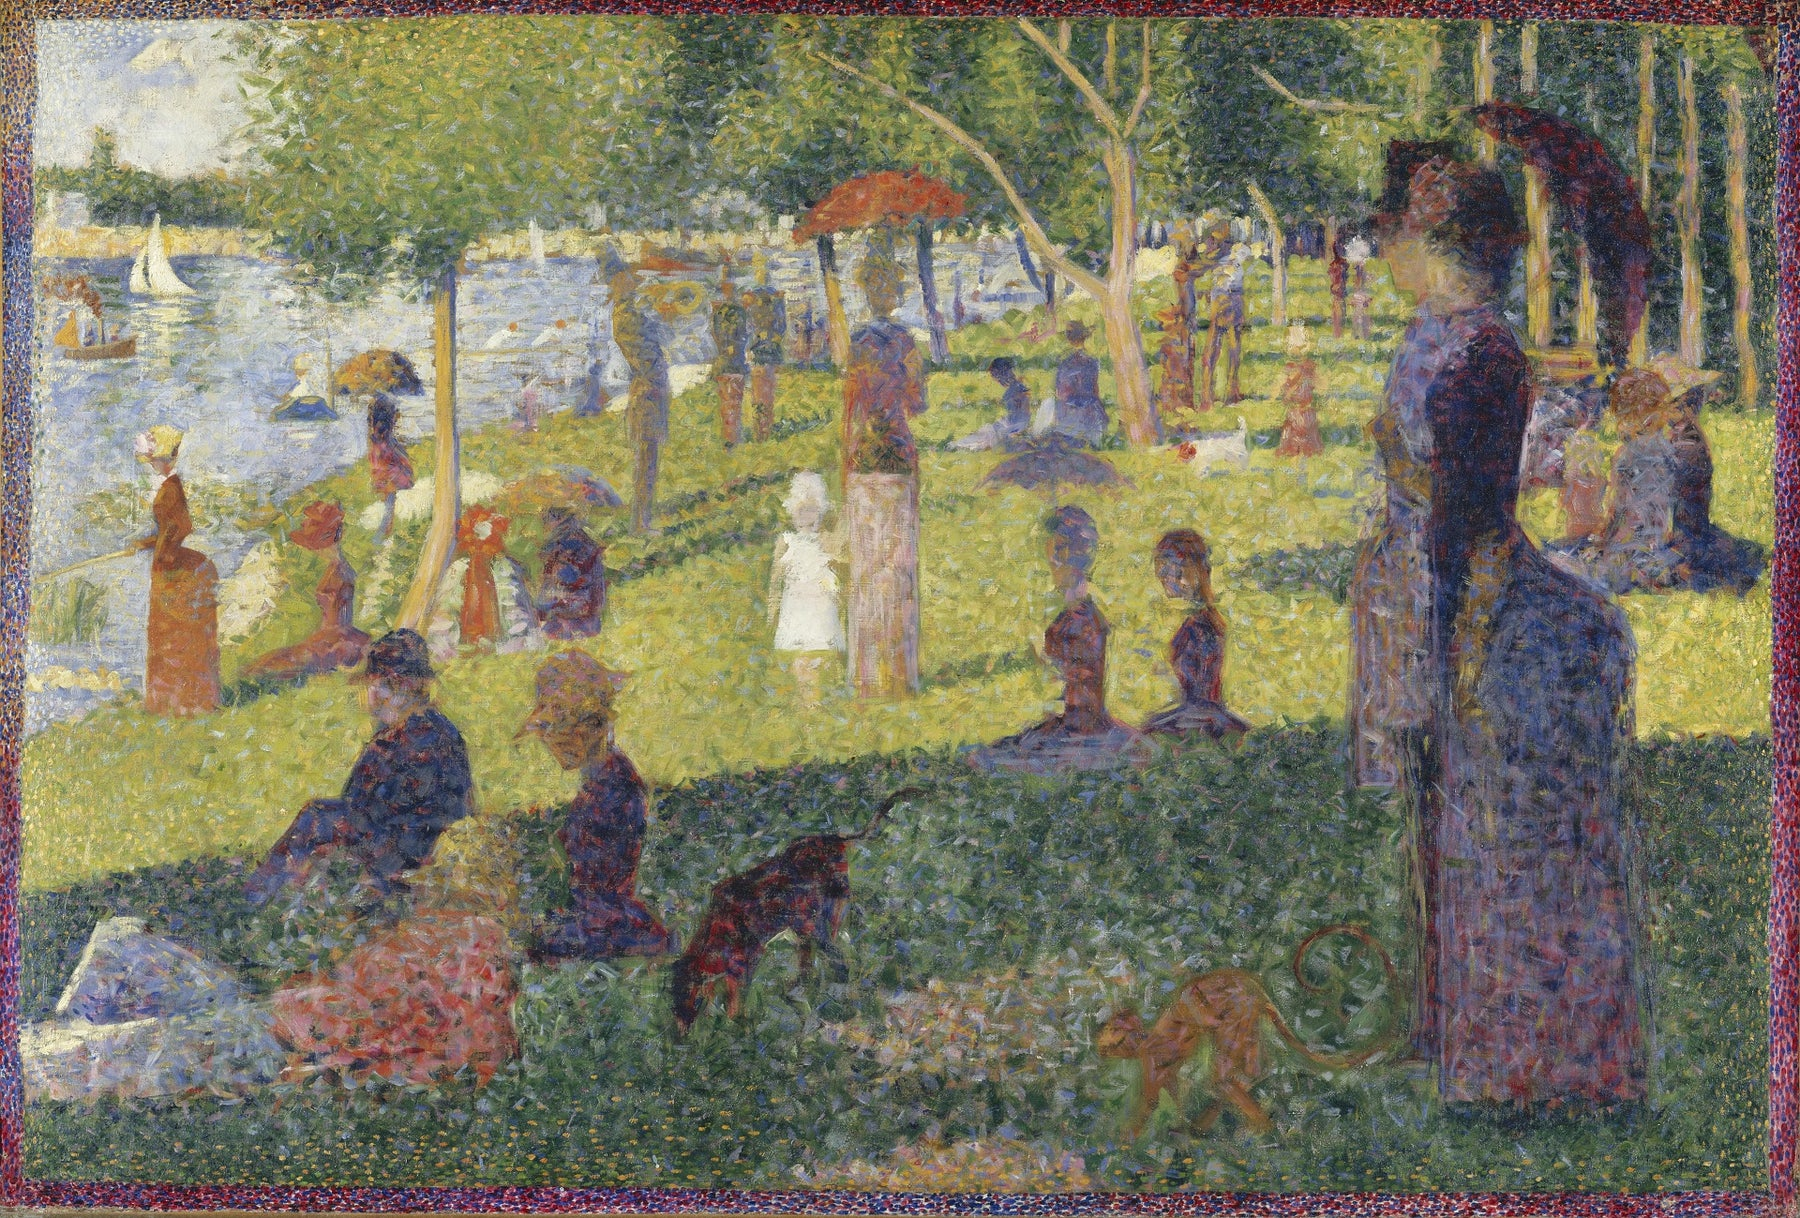 Study for A Sunday on La Grande Jatte by Georges Seurat Reproduction Painting by Blue Surf Art Grande Jatte